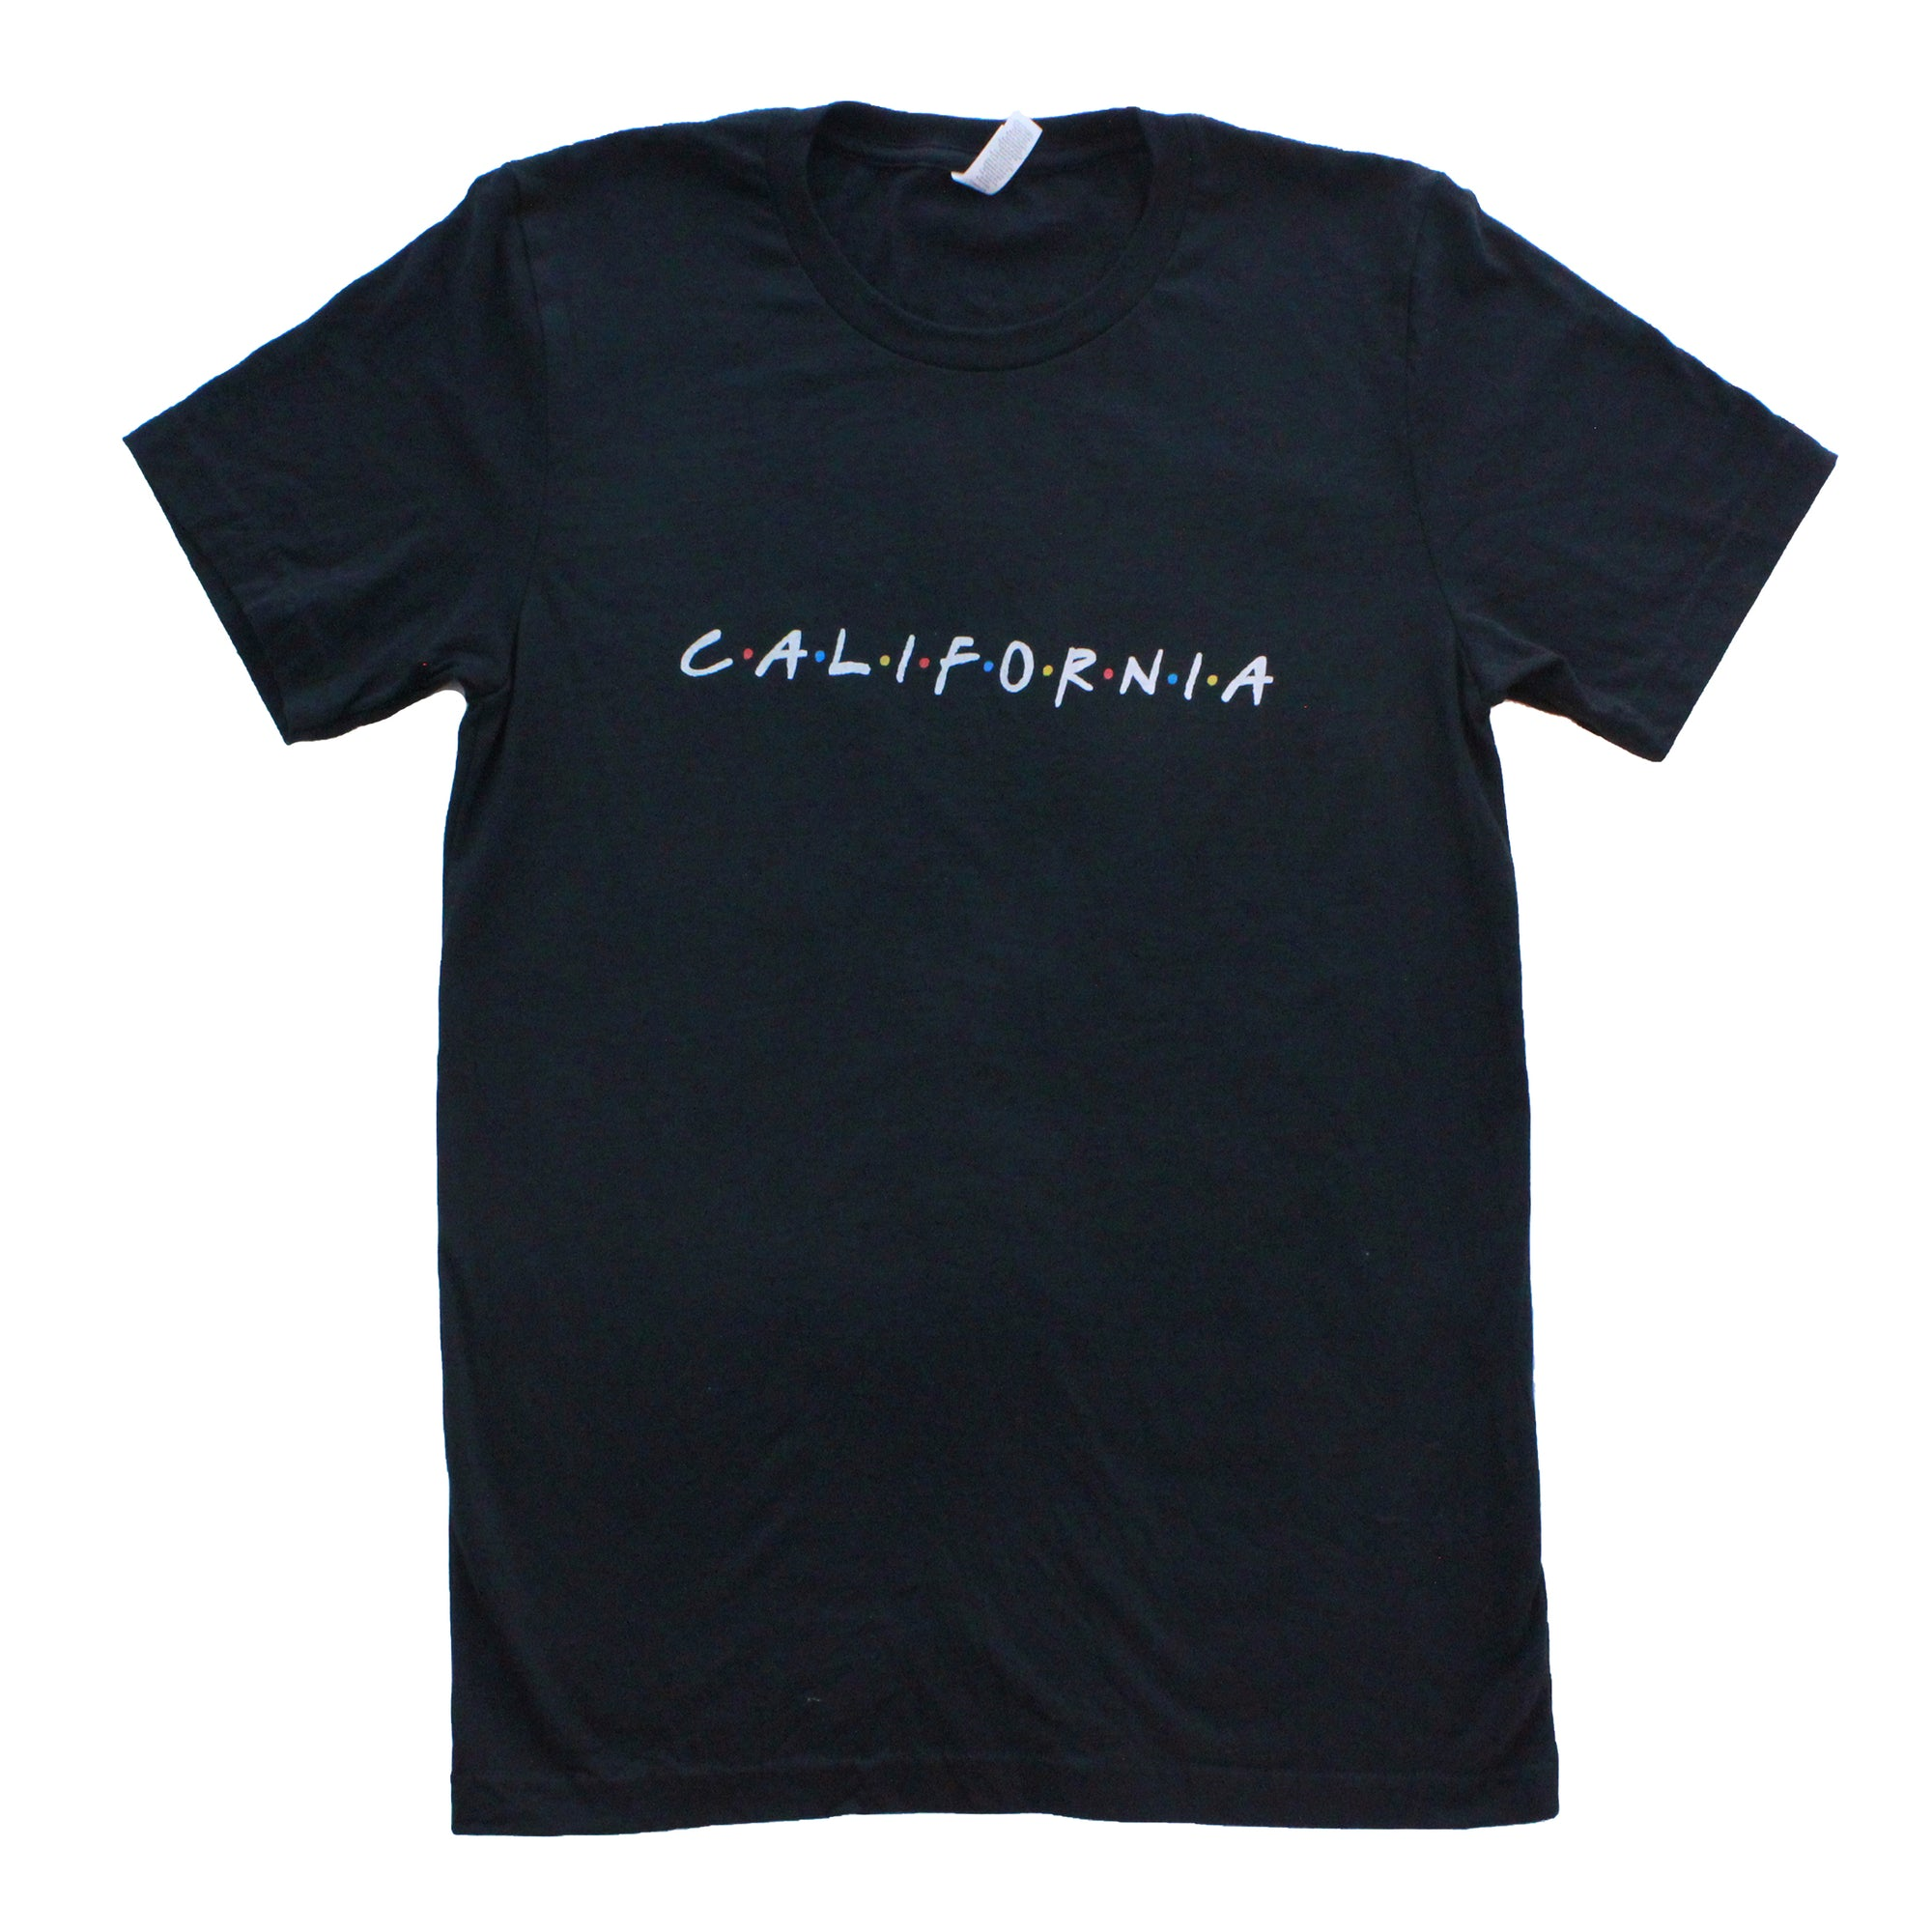 California Sitcom Parody T-Shirt